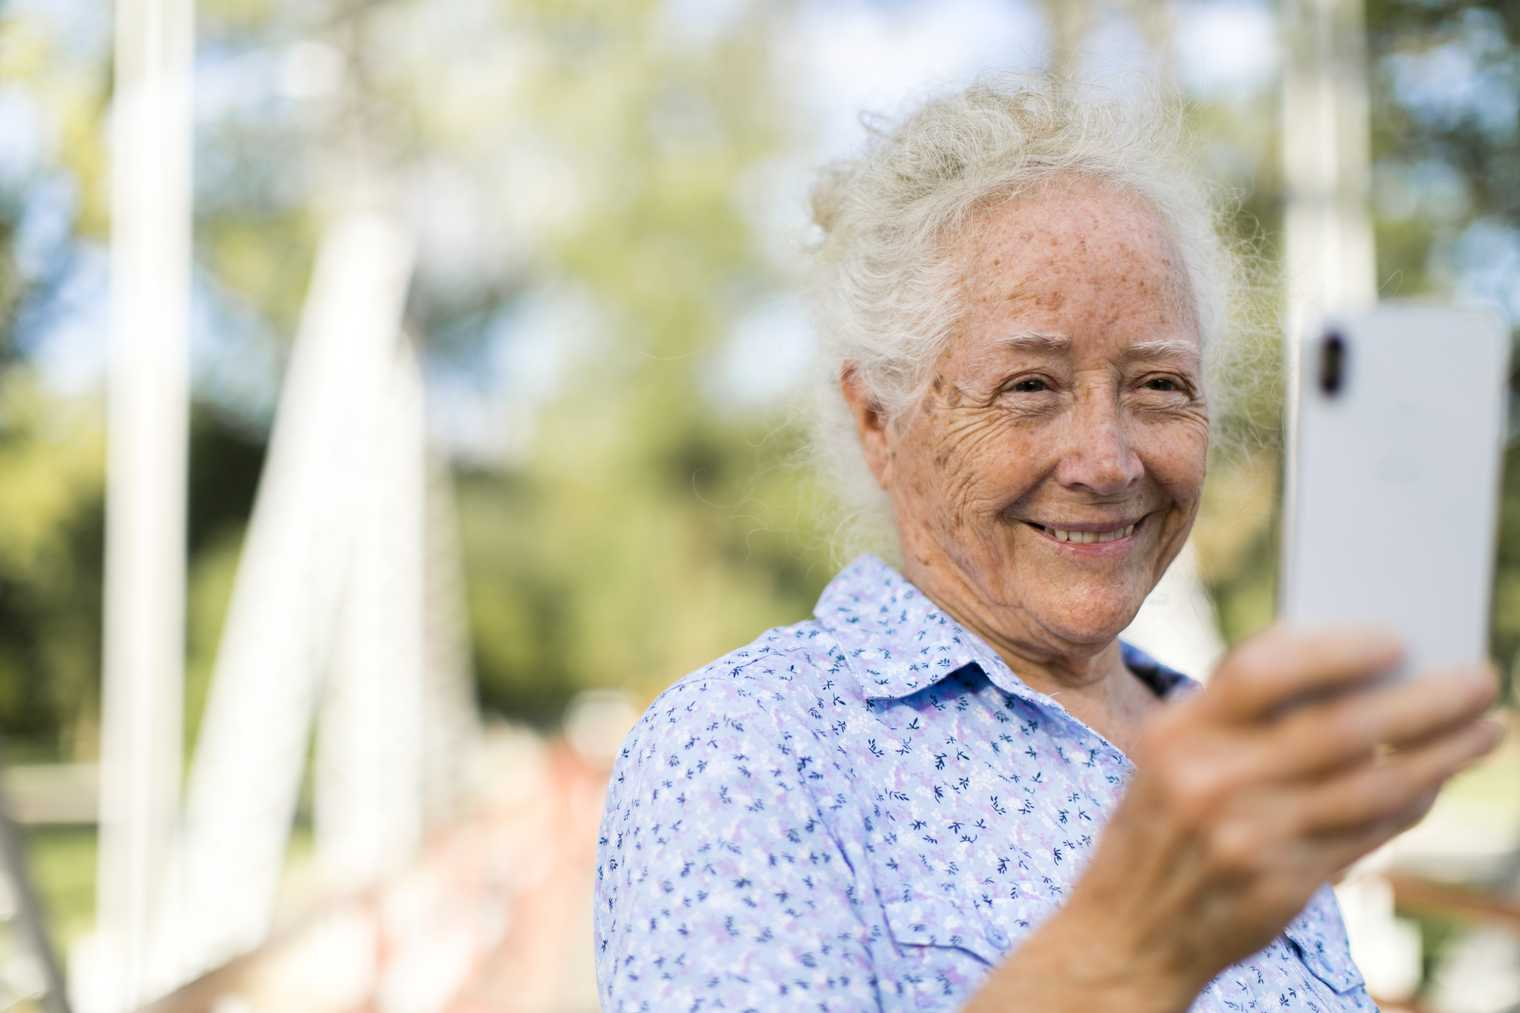 Many of the older generation are tech-savvy